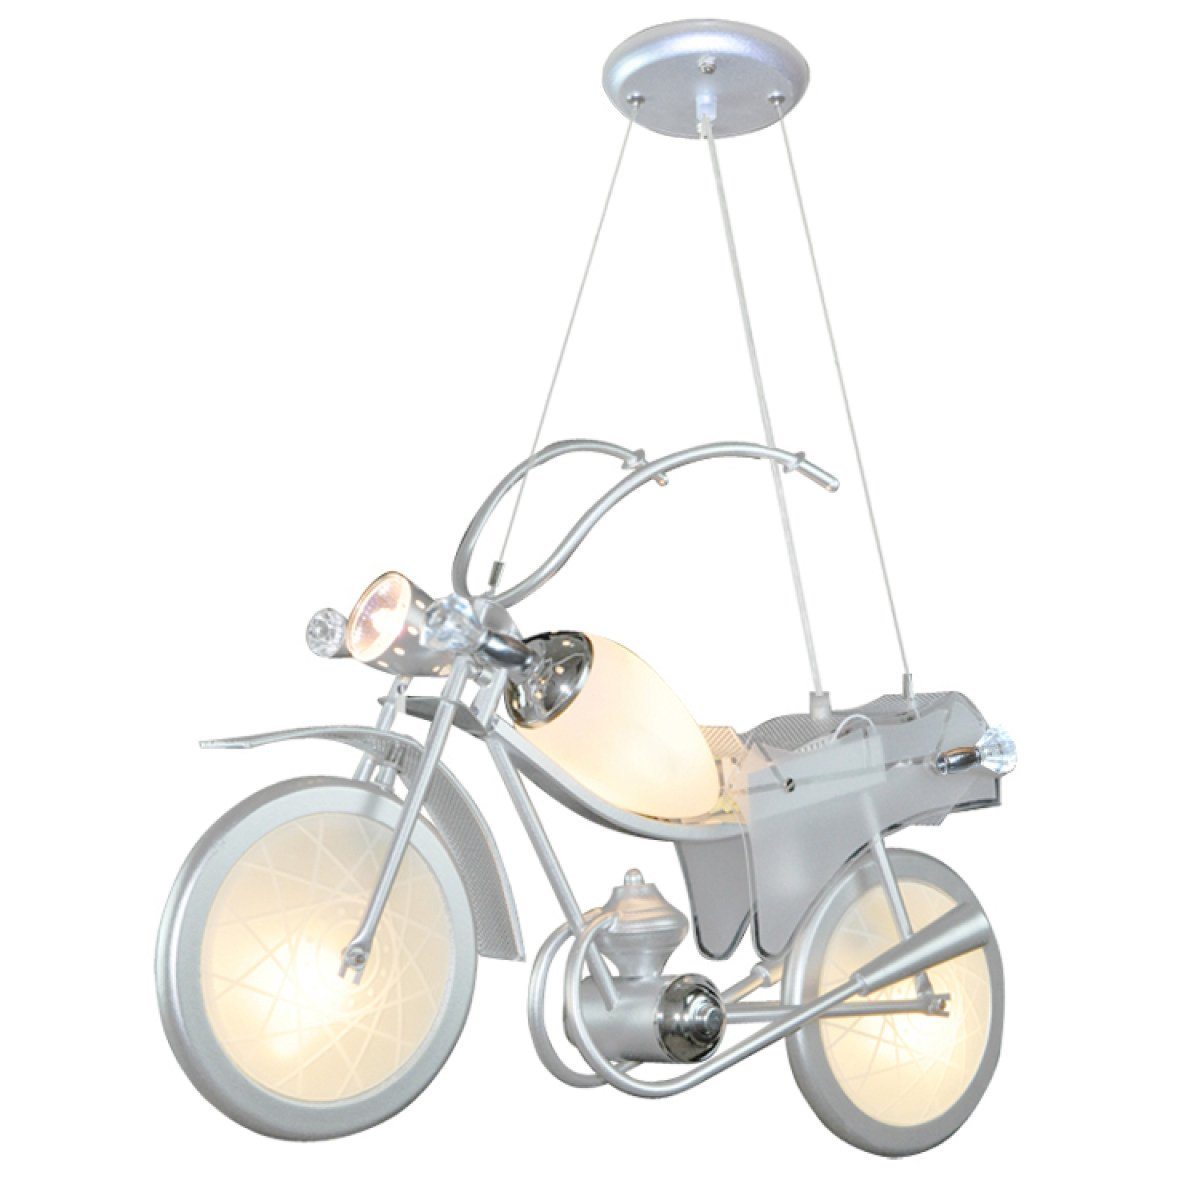 Children's Room Personality Originality Decoration Bedroom Pendant Lamp Clothing Store Kindergarten Motorcycle Remote Control Lamp,A